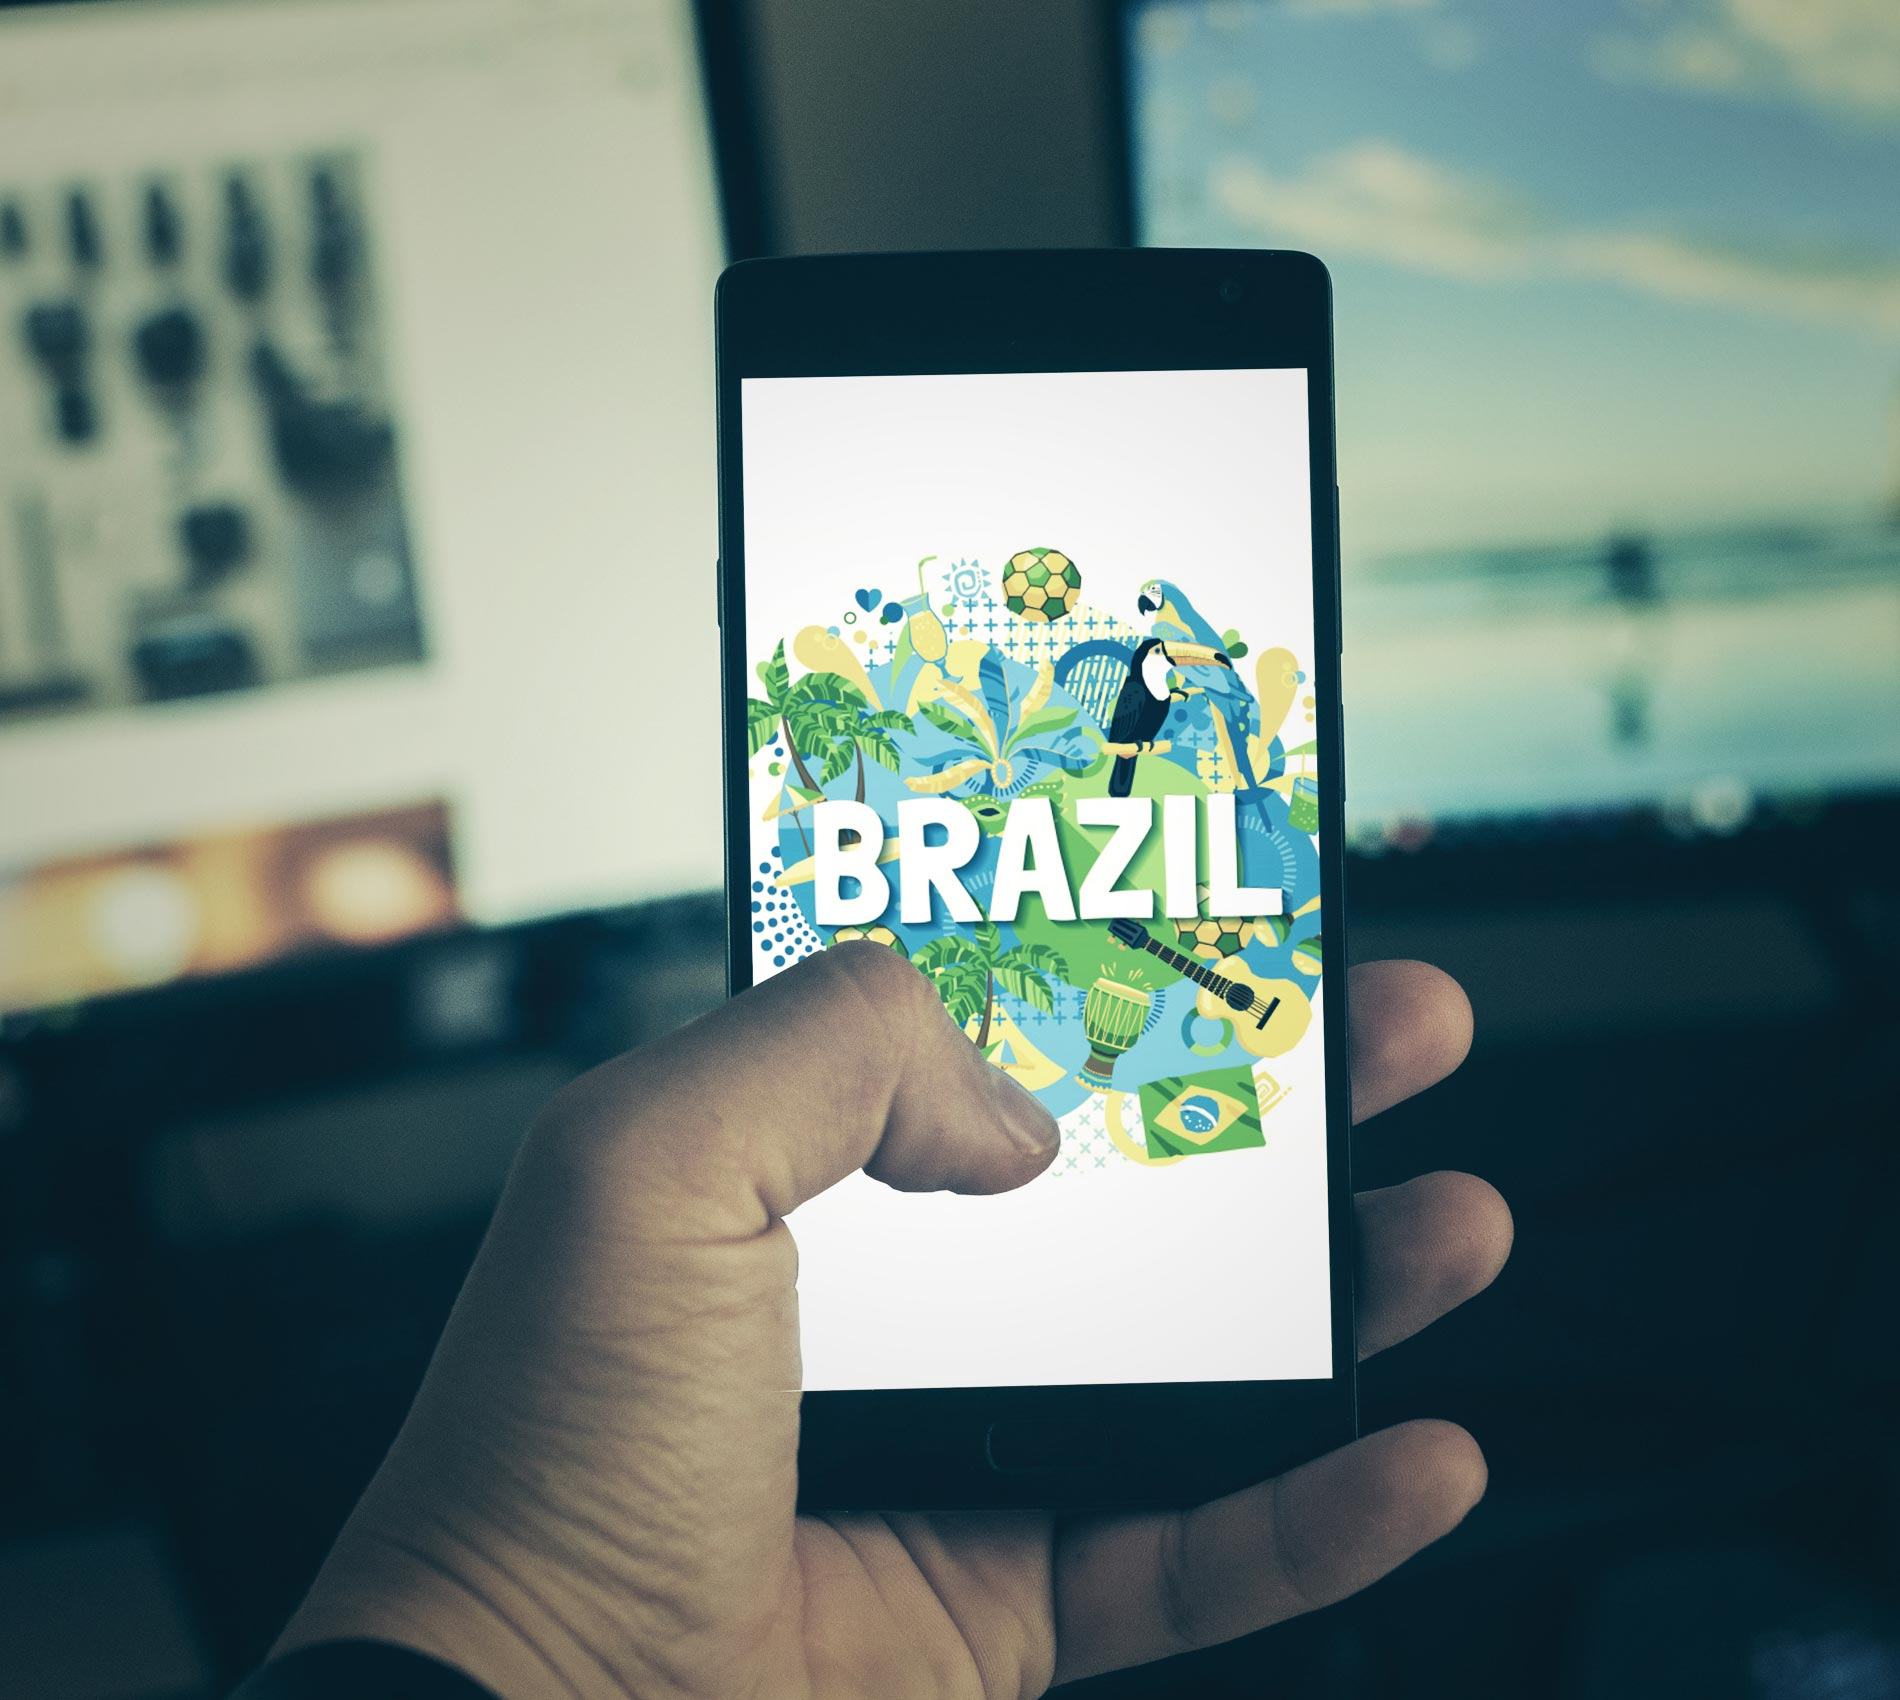 Brazil is the 5th Country in Smartphone Usage